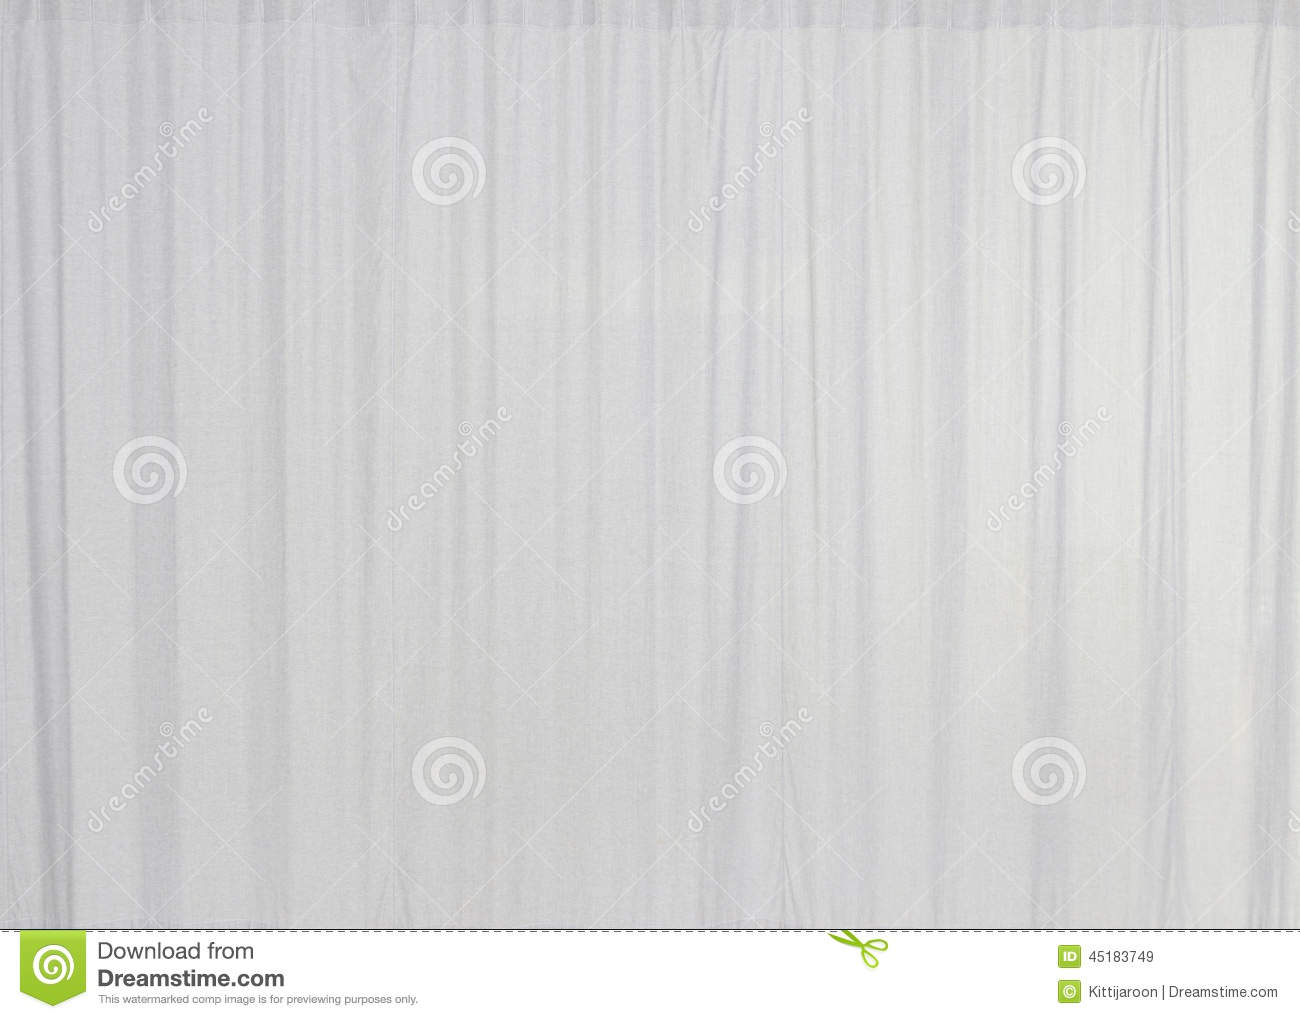 White curtain texture - White Curtain With Texture Background